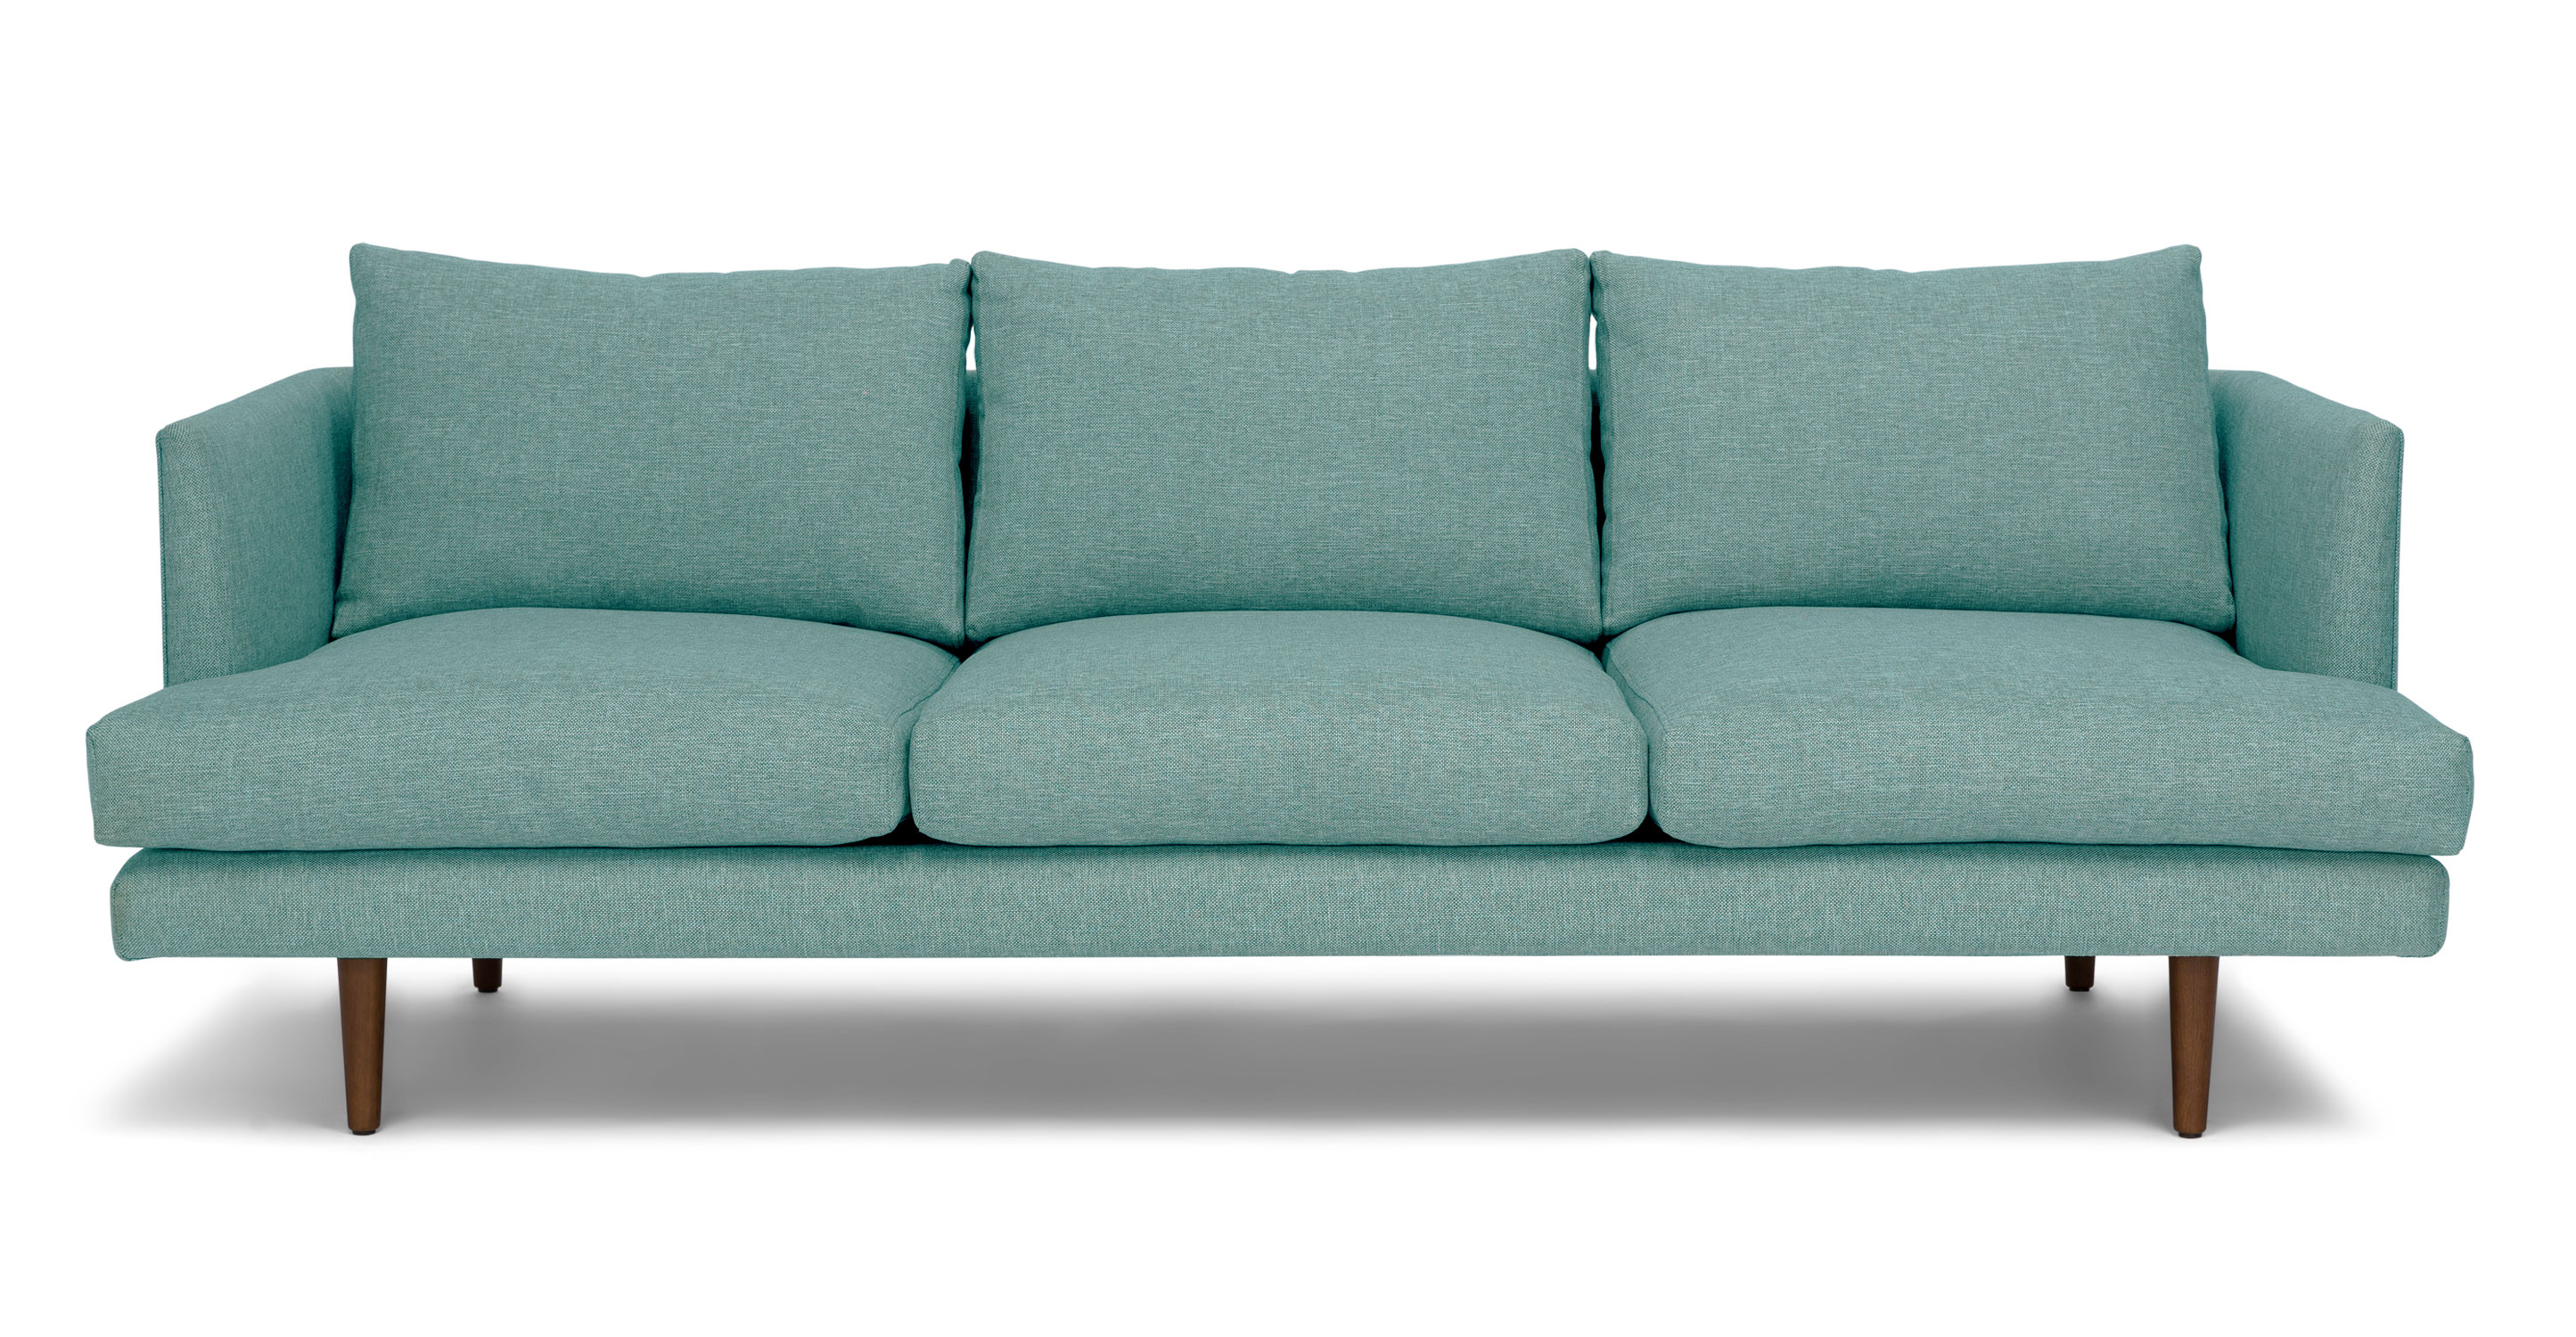 aqua sofa kivik with chaise review turquoise love the living rooms